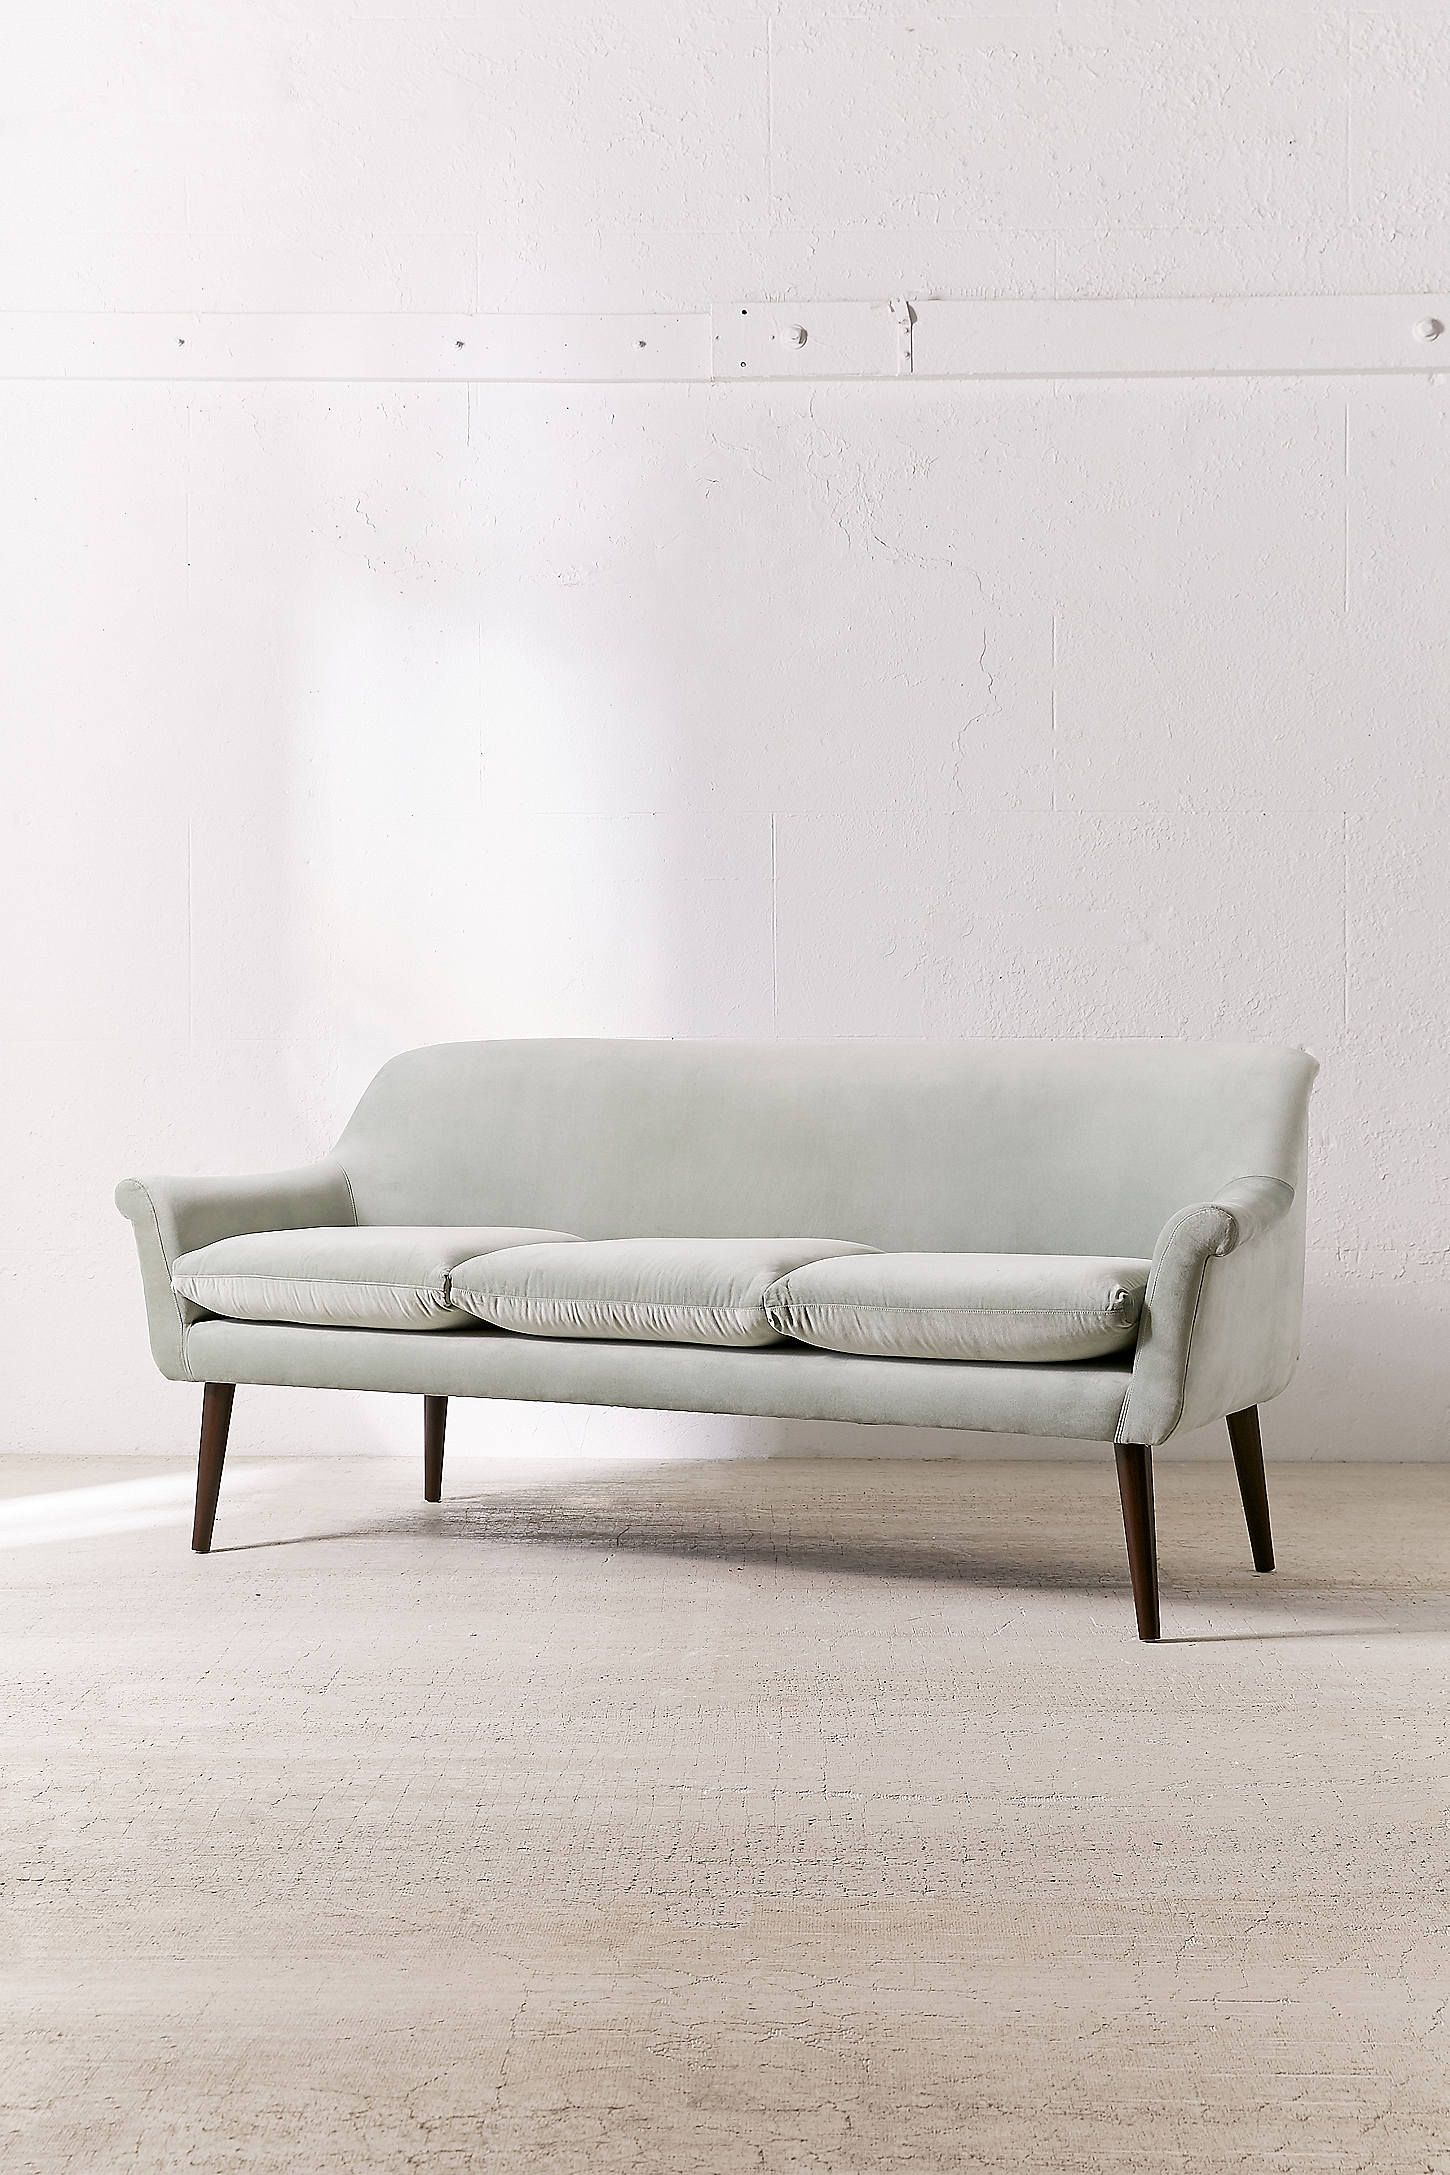 room design living well sleeper ideas sofa home sofas or storage outfitters tufted as silver closets couch white urban inspired and prodigious hawaii